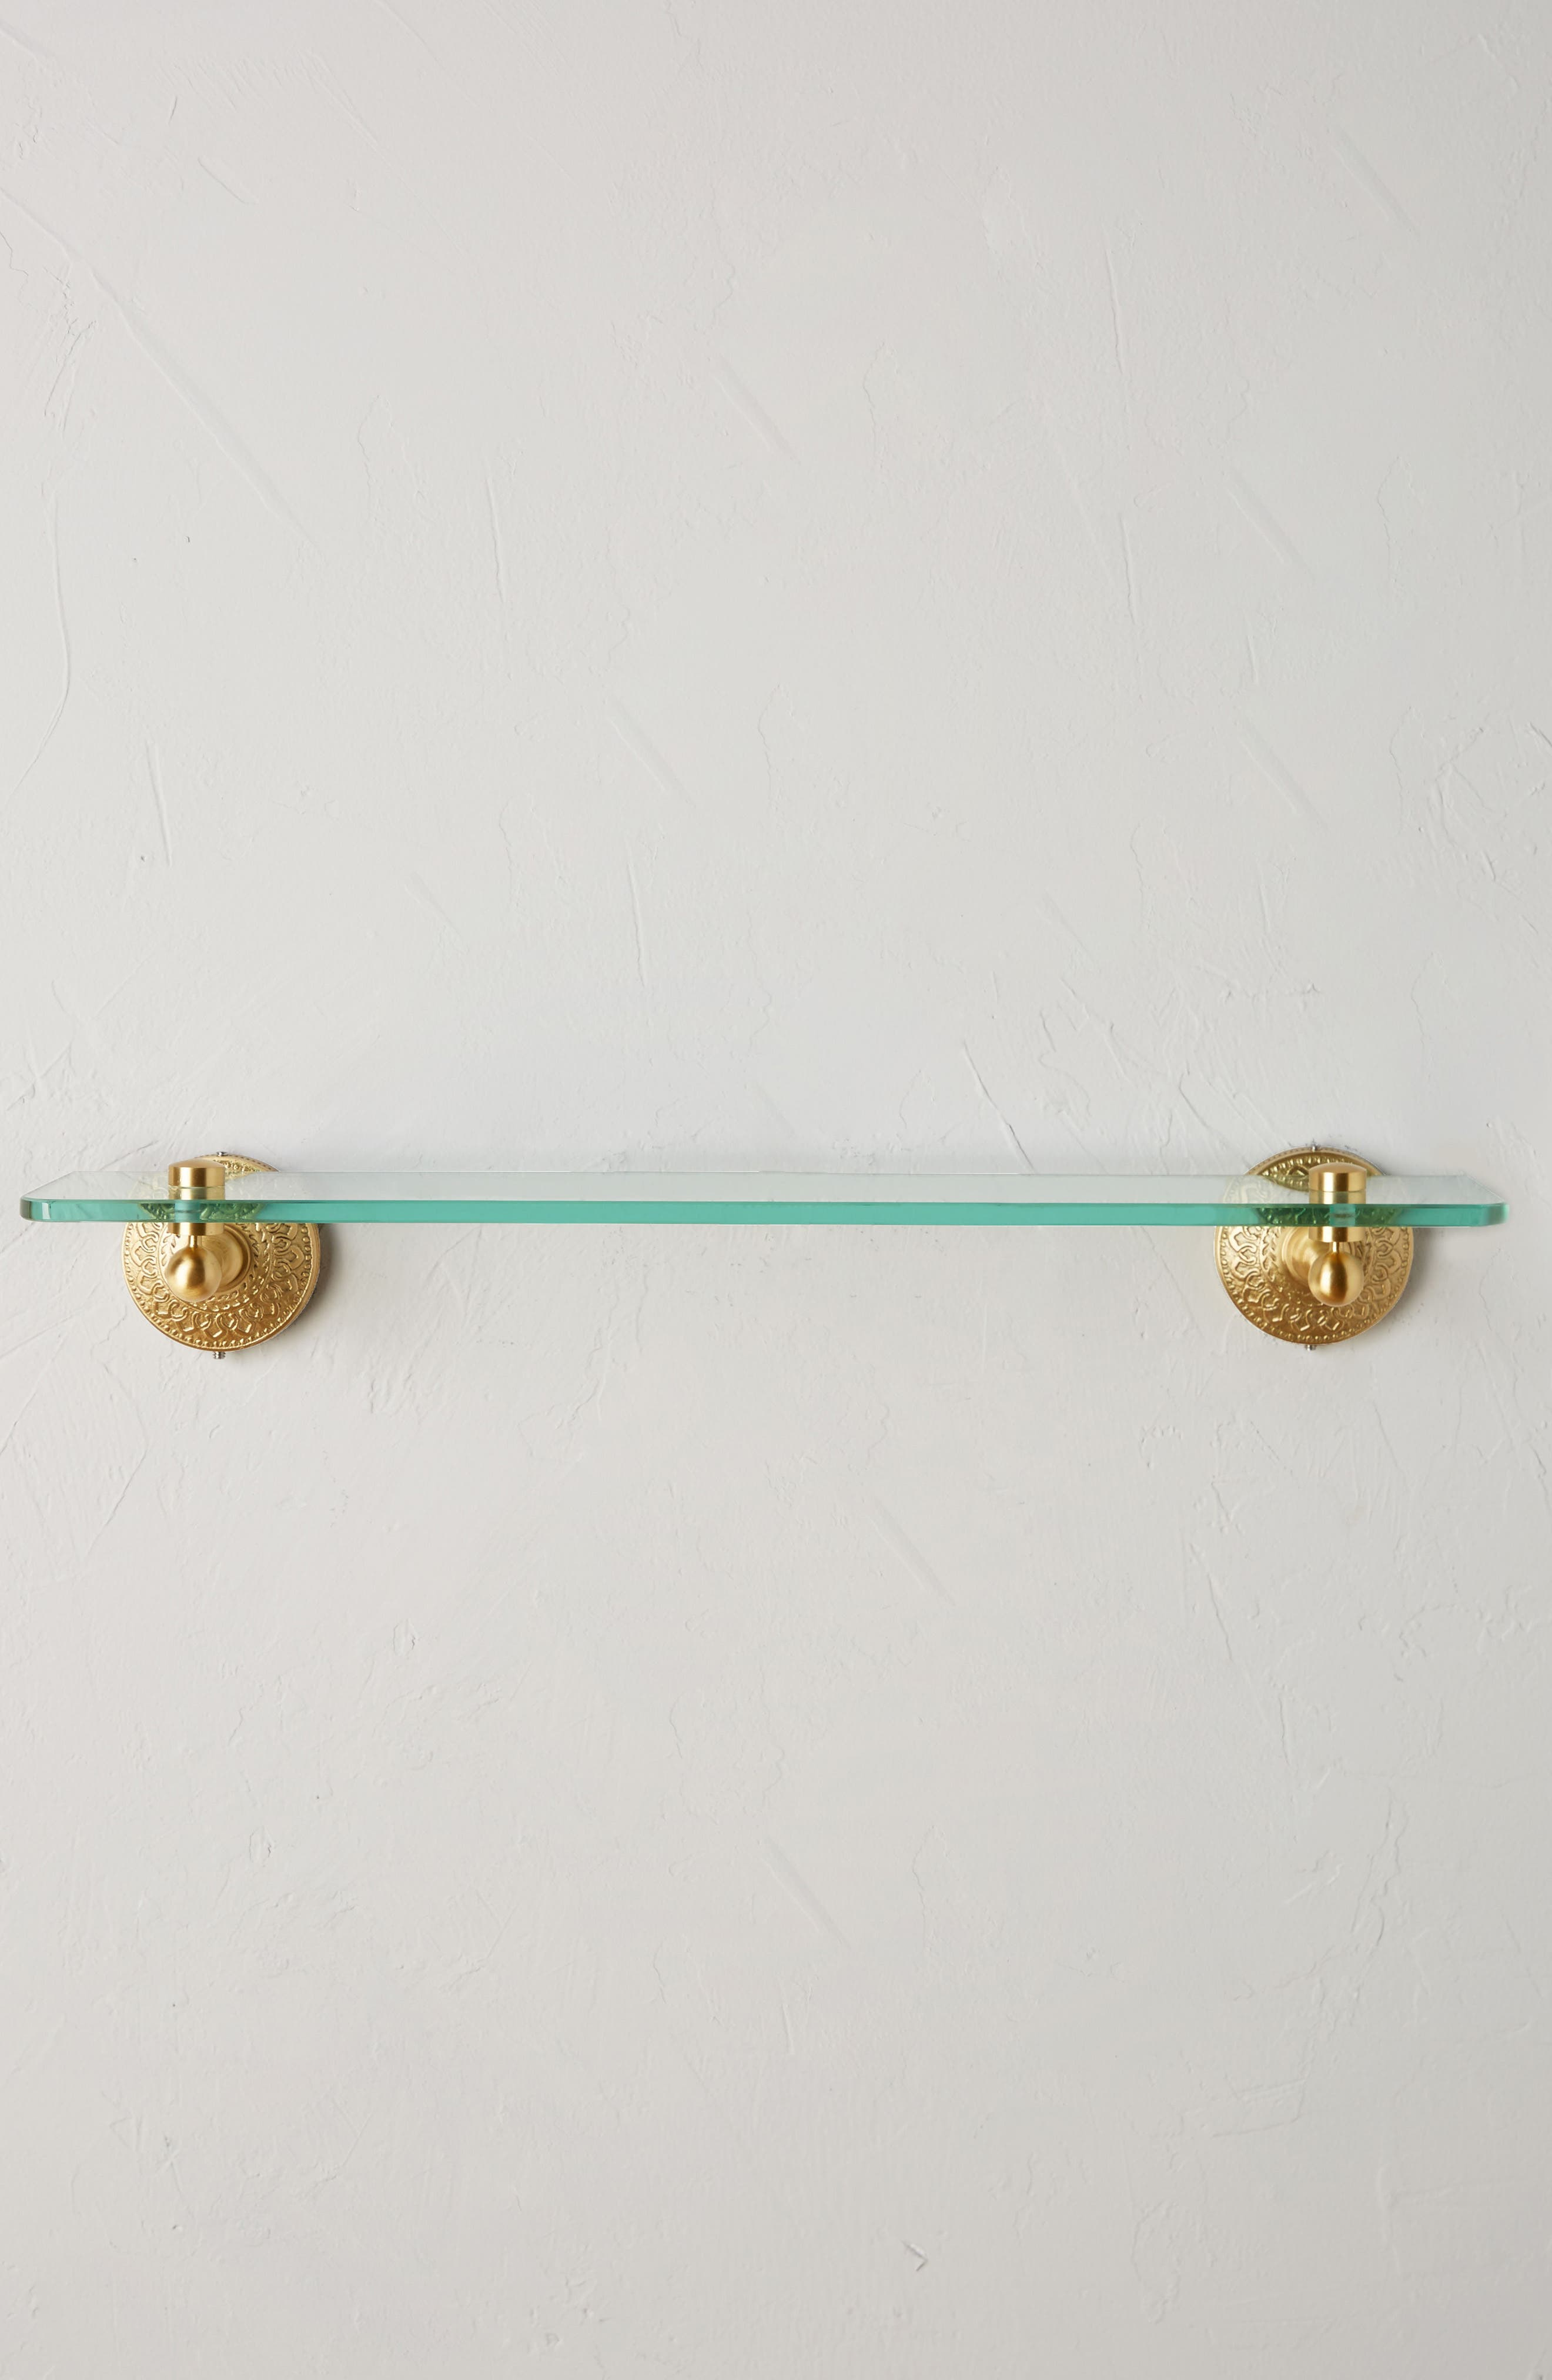 Brass Medallion Shelf,                             Main thumbnail 1, color,                             Honey